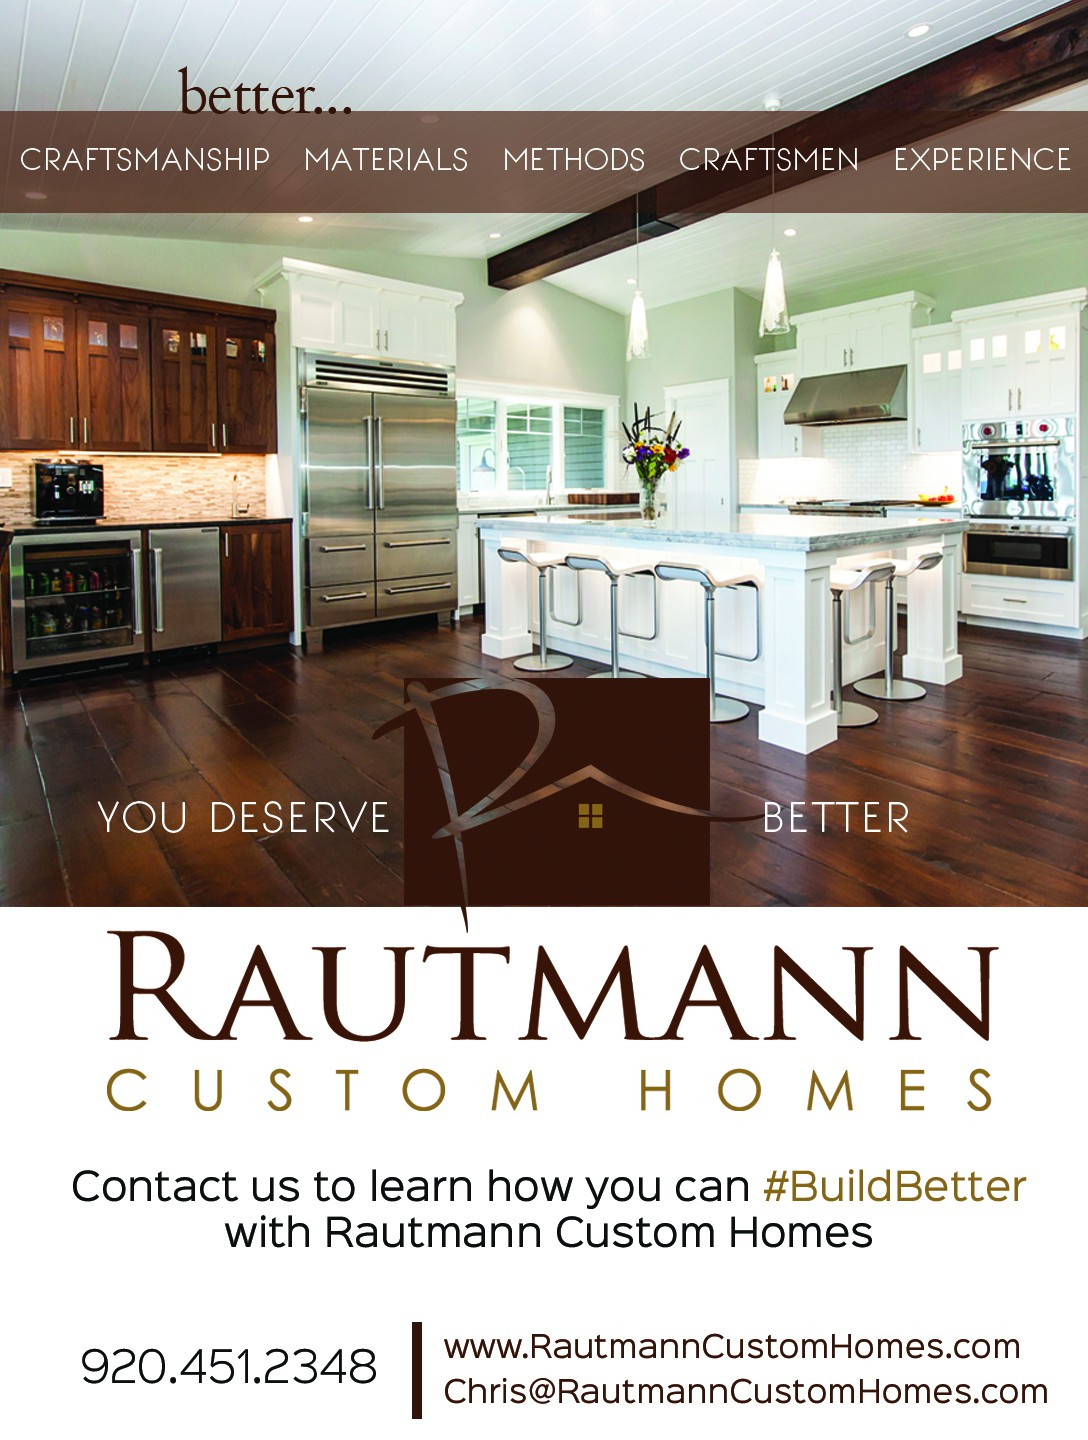 1/4 Page ad for a Custom Home Builder